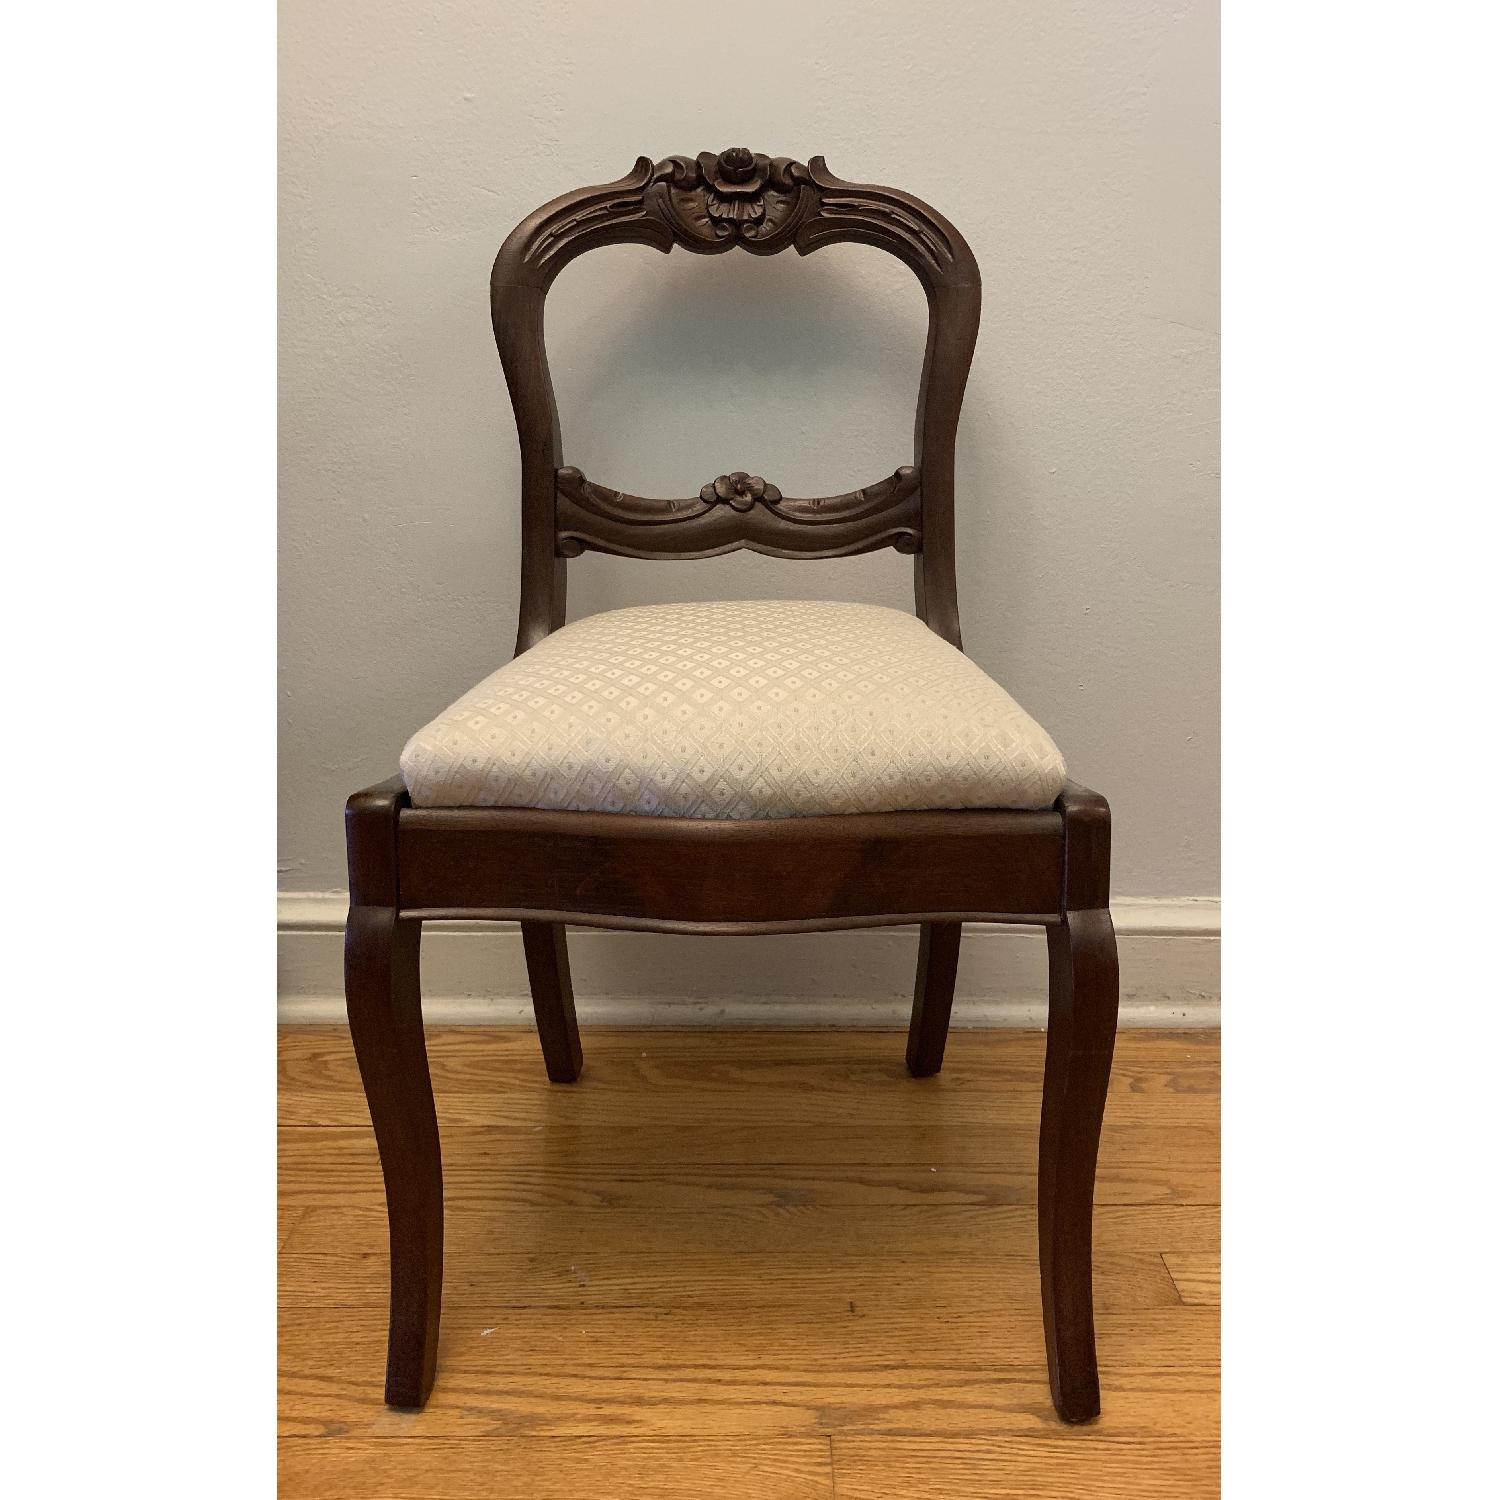 Vintage Cherry Upholstered Dining Chair - image-1